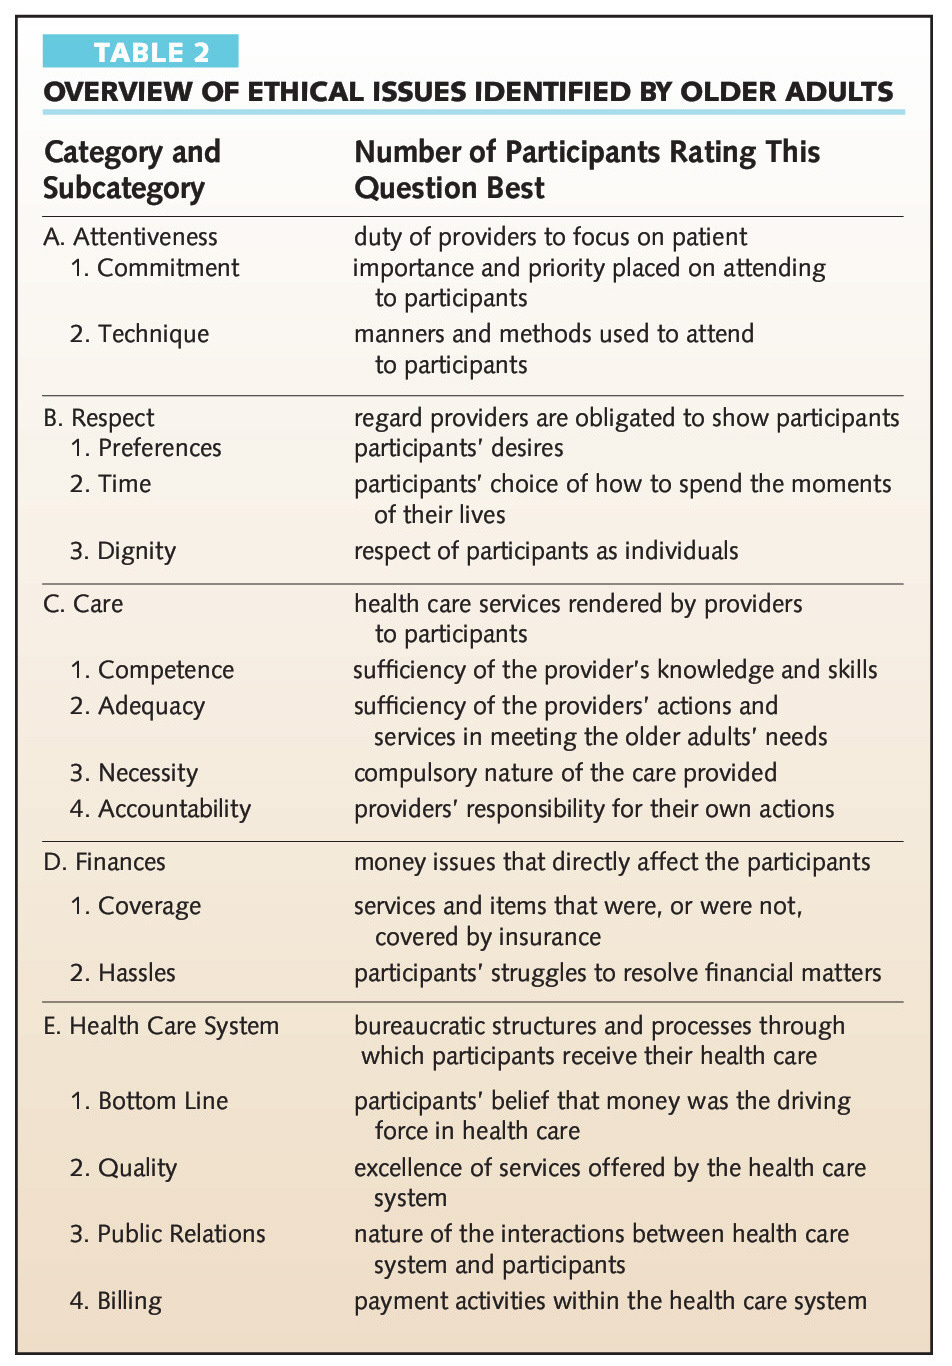 ethical issues related to health care the older adult s perspective table 2overview of ethical issues identified by older adults